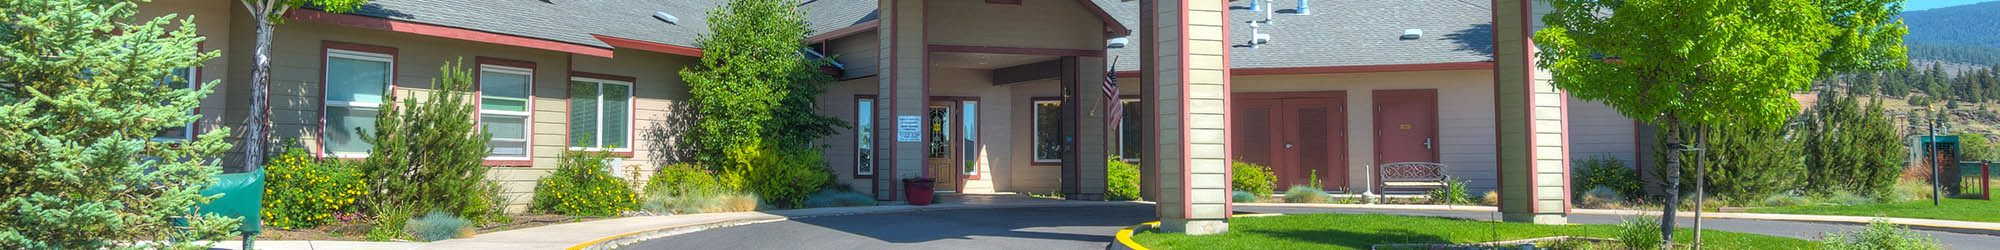 Photos of Susanville senior living